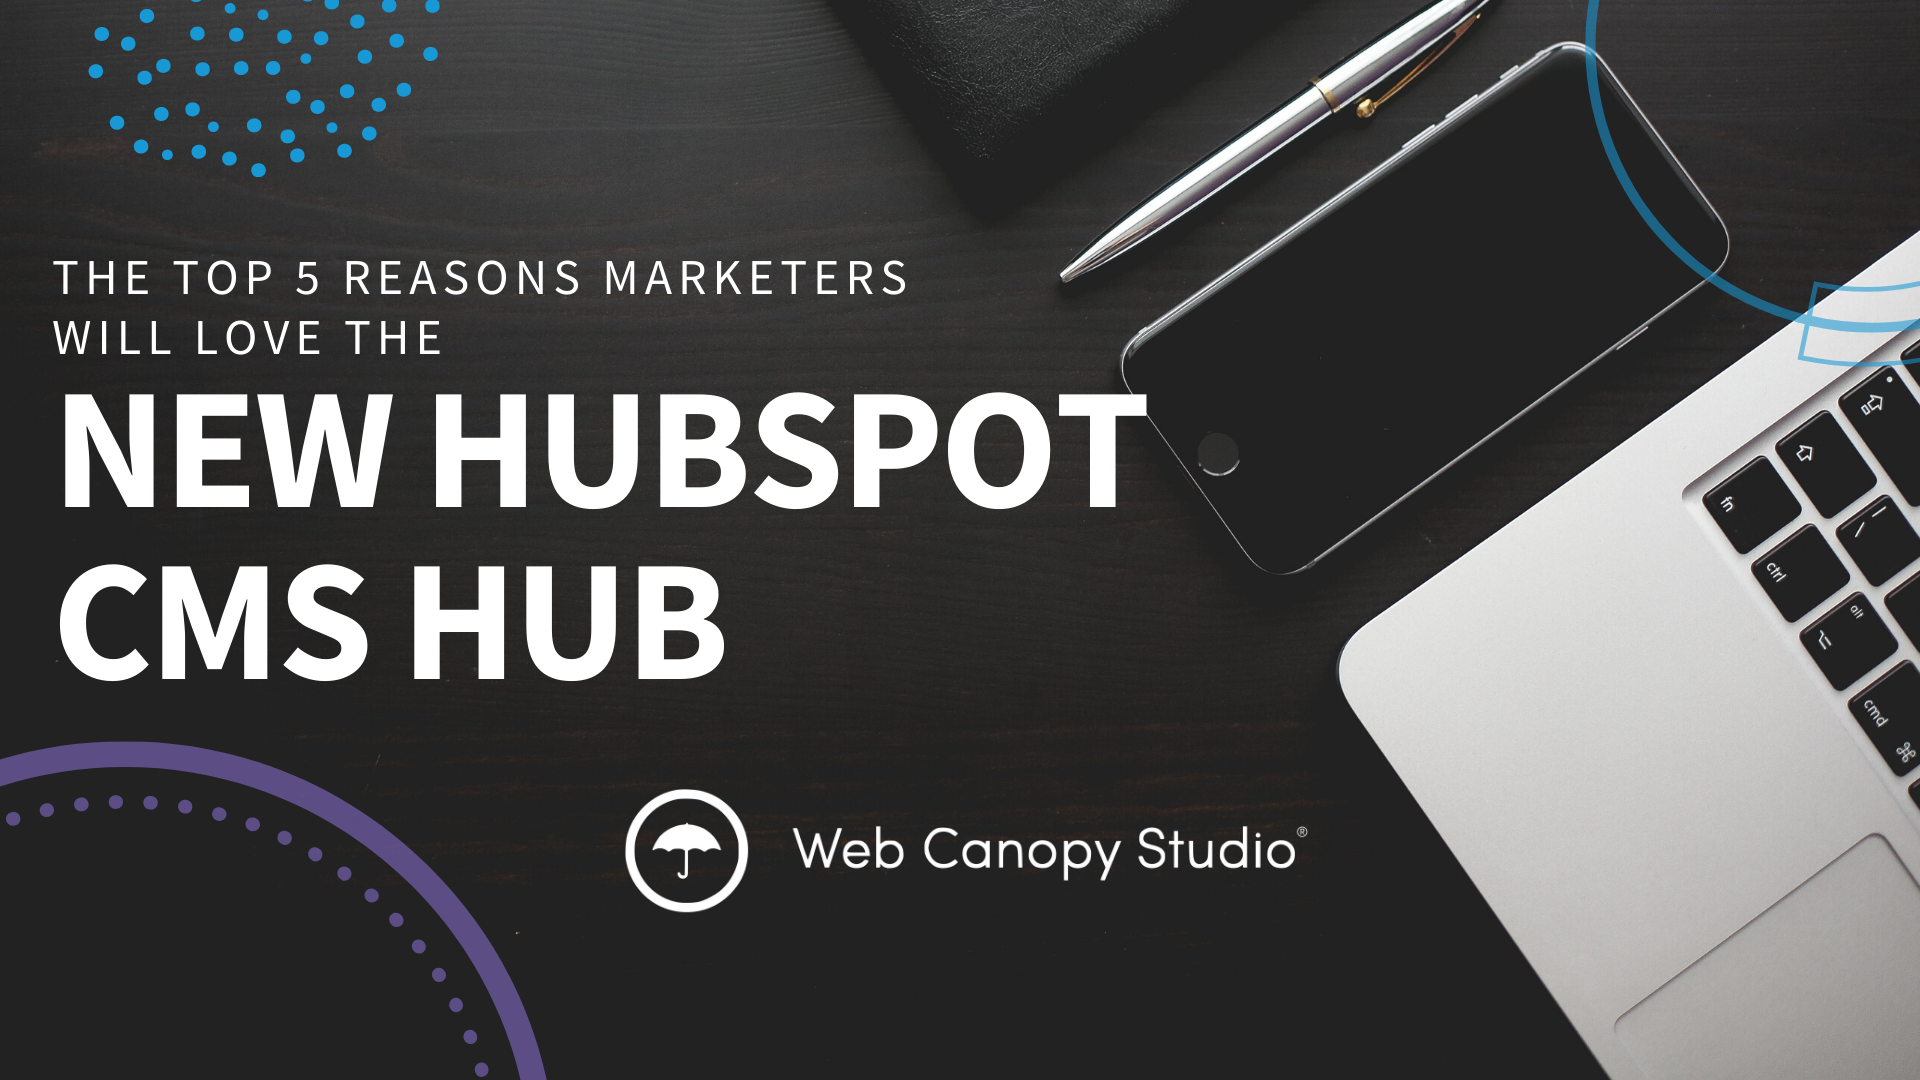 The new HubSpot CMS Hub is awesome and these are the top 5 reasons you will love it